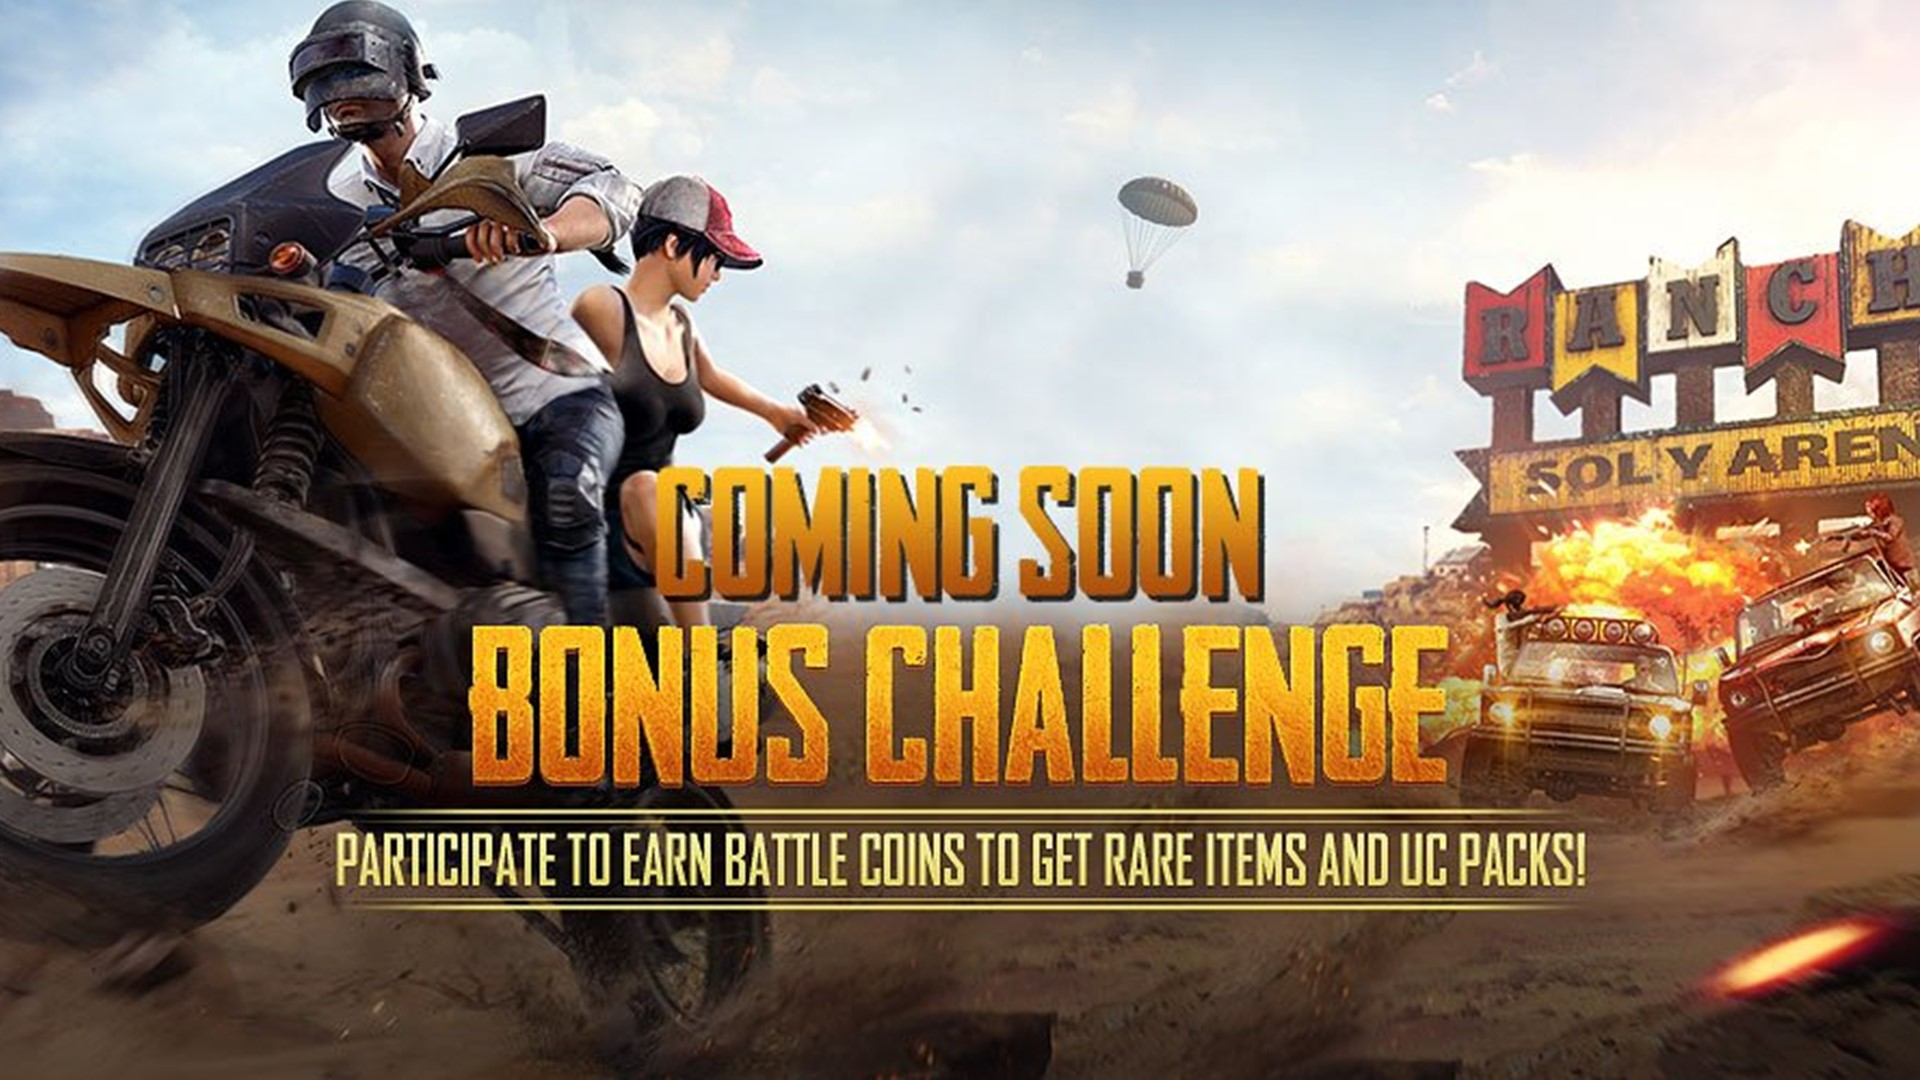 PUBG Mobile India Bonus Challenge: Participate and play for those